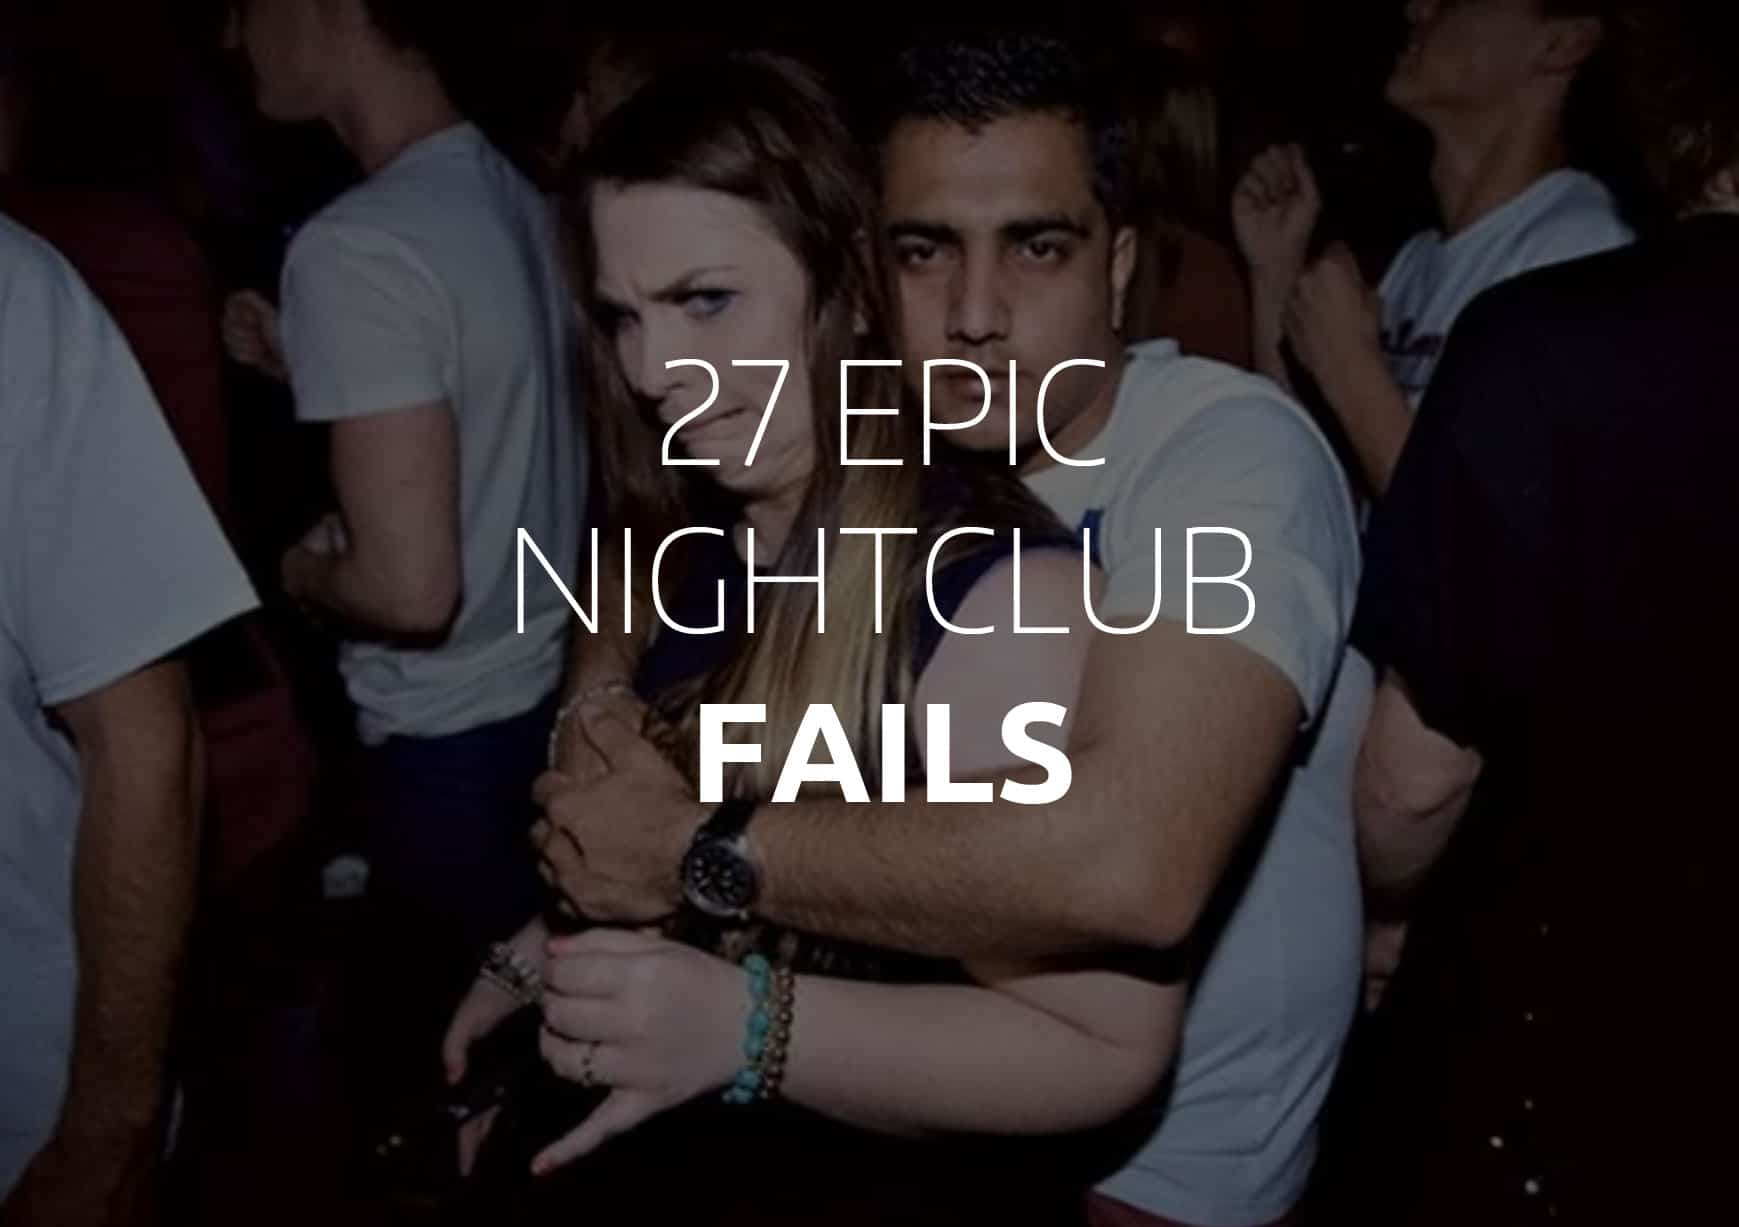 27 epic nightclub fails